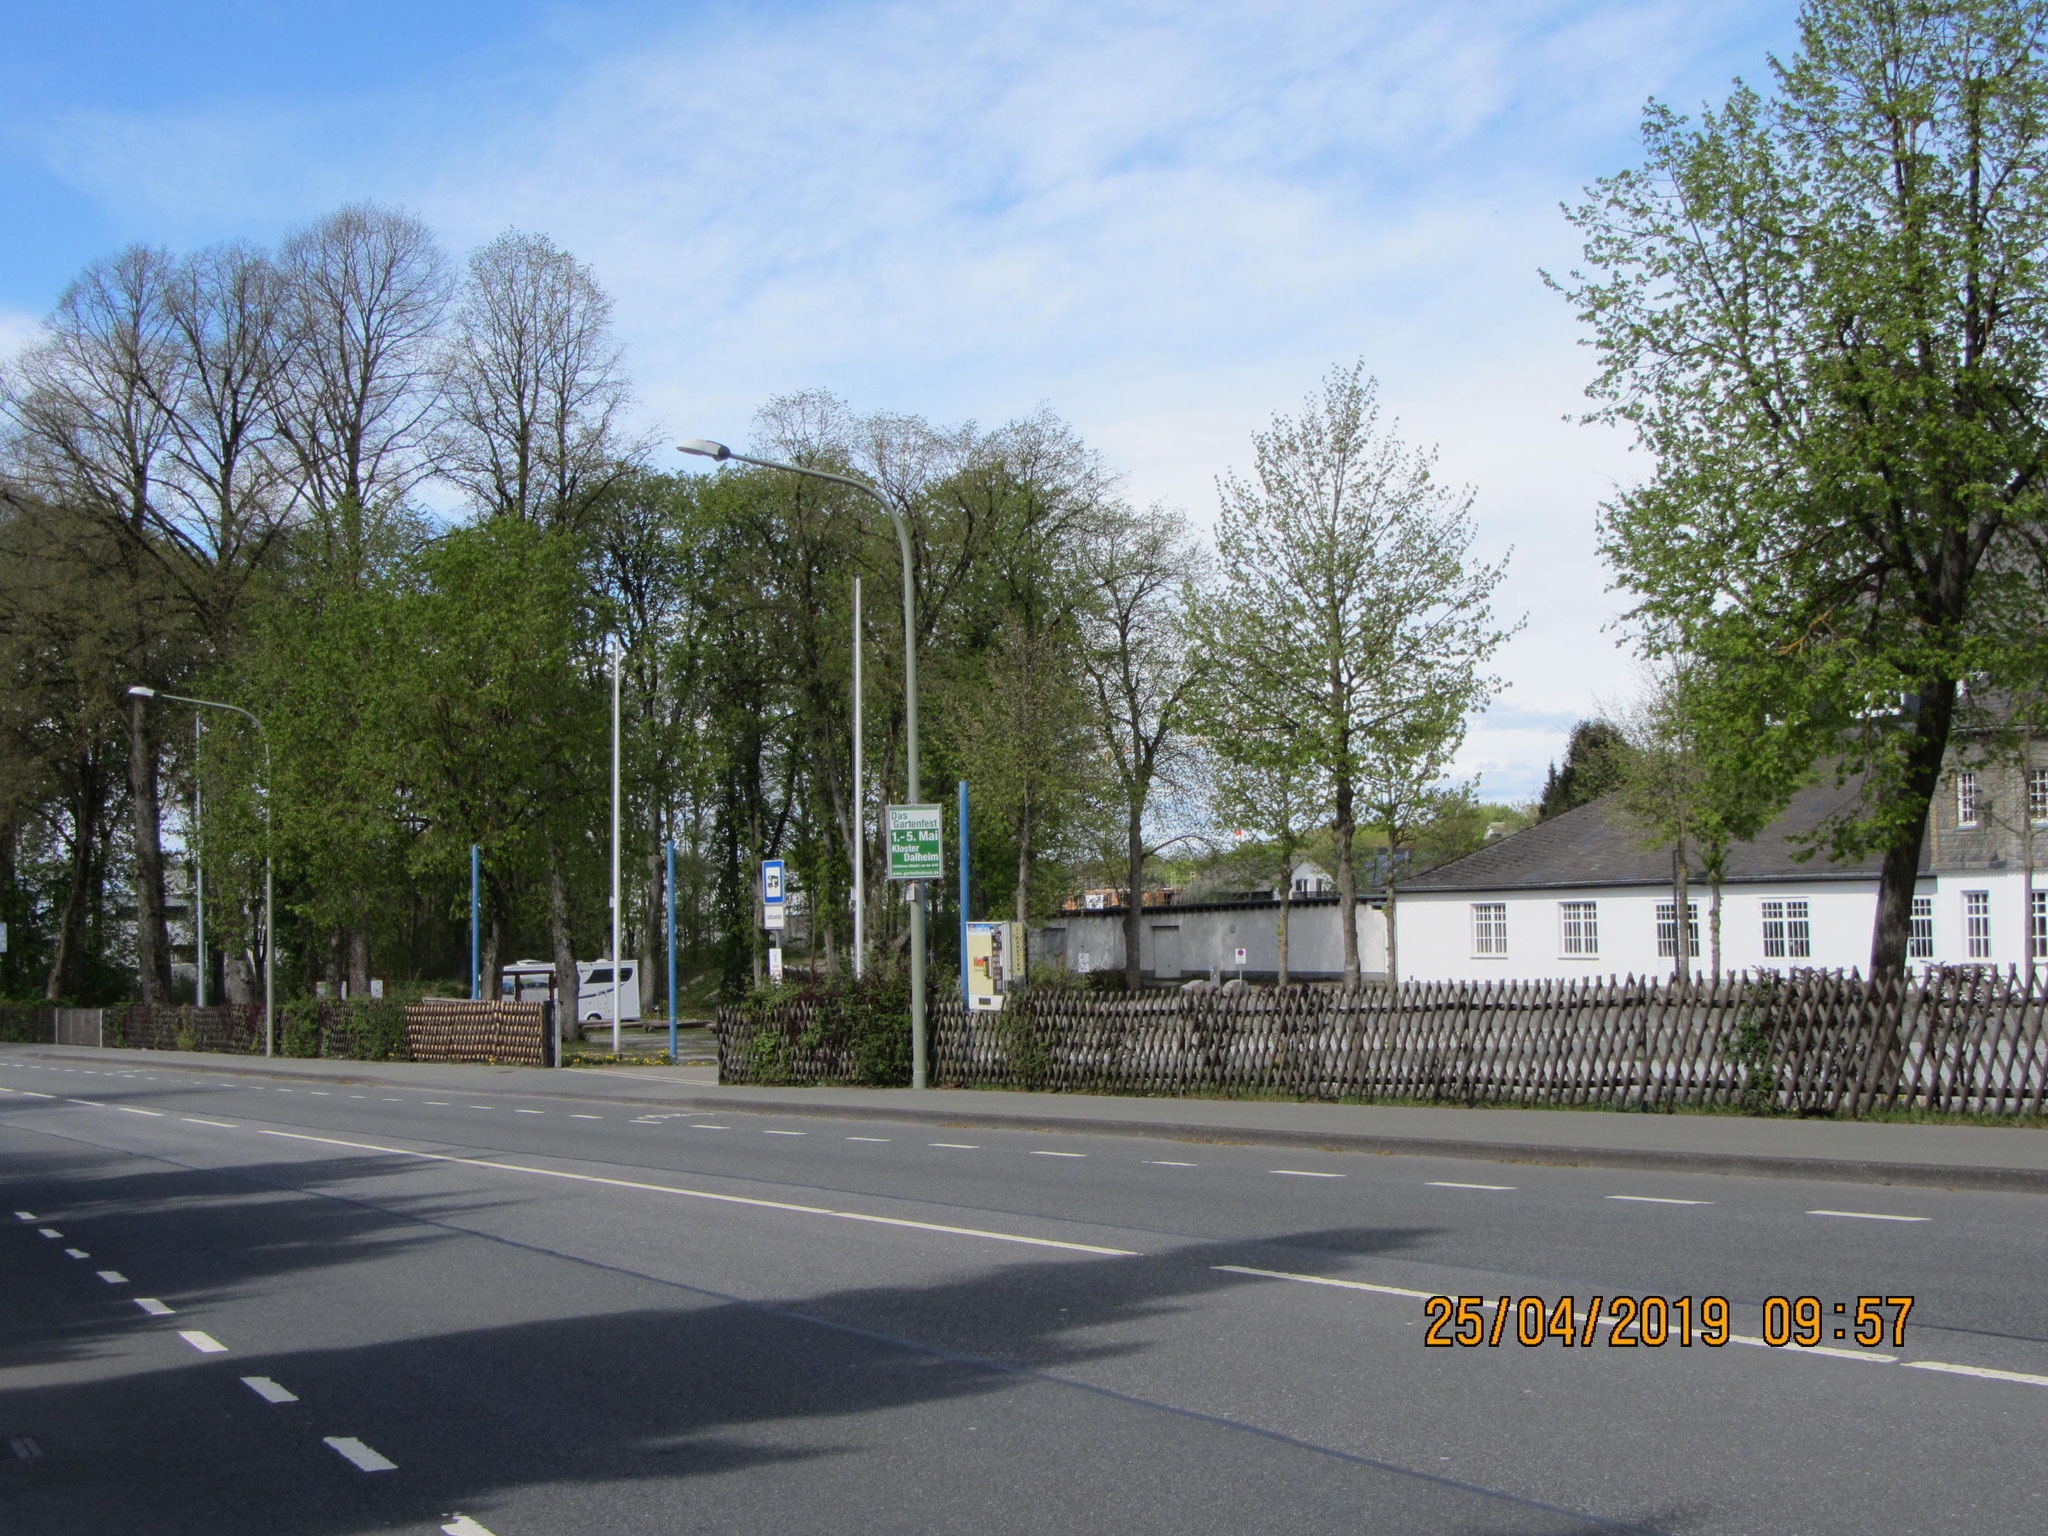 Stellplatz in Brilon